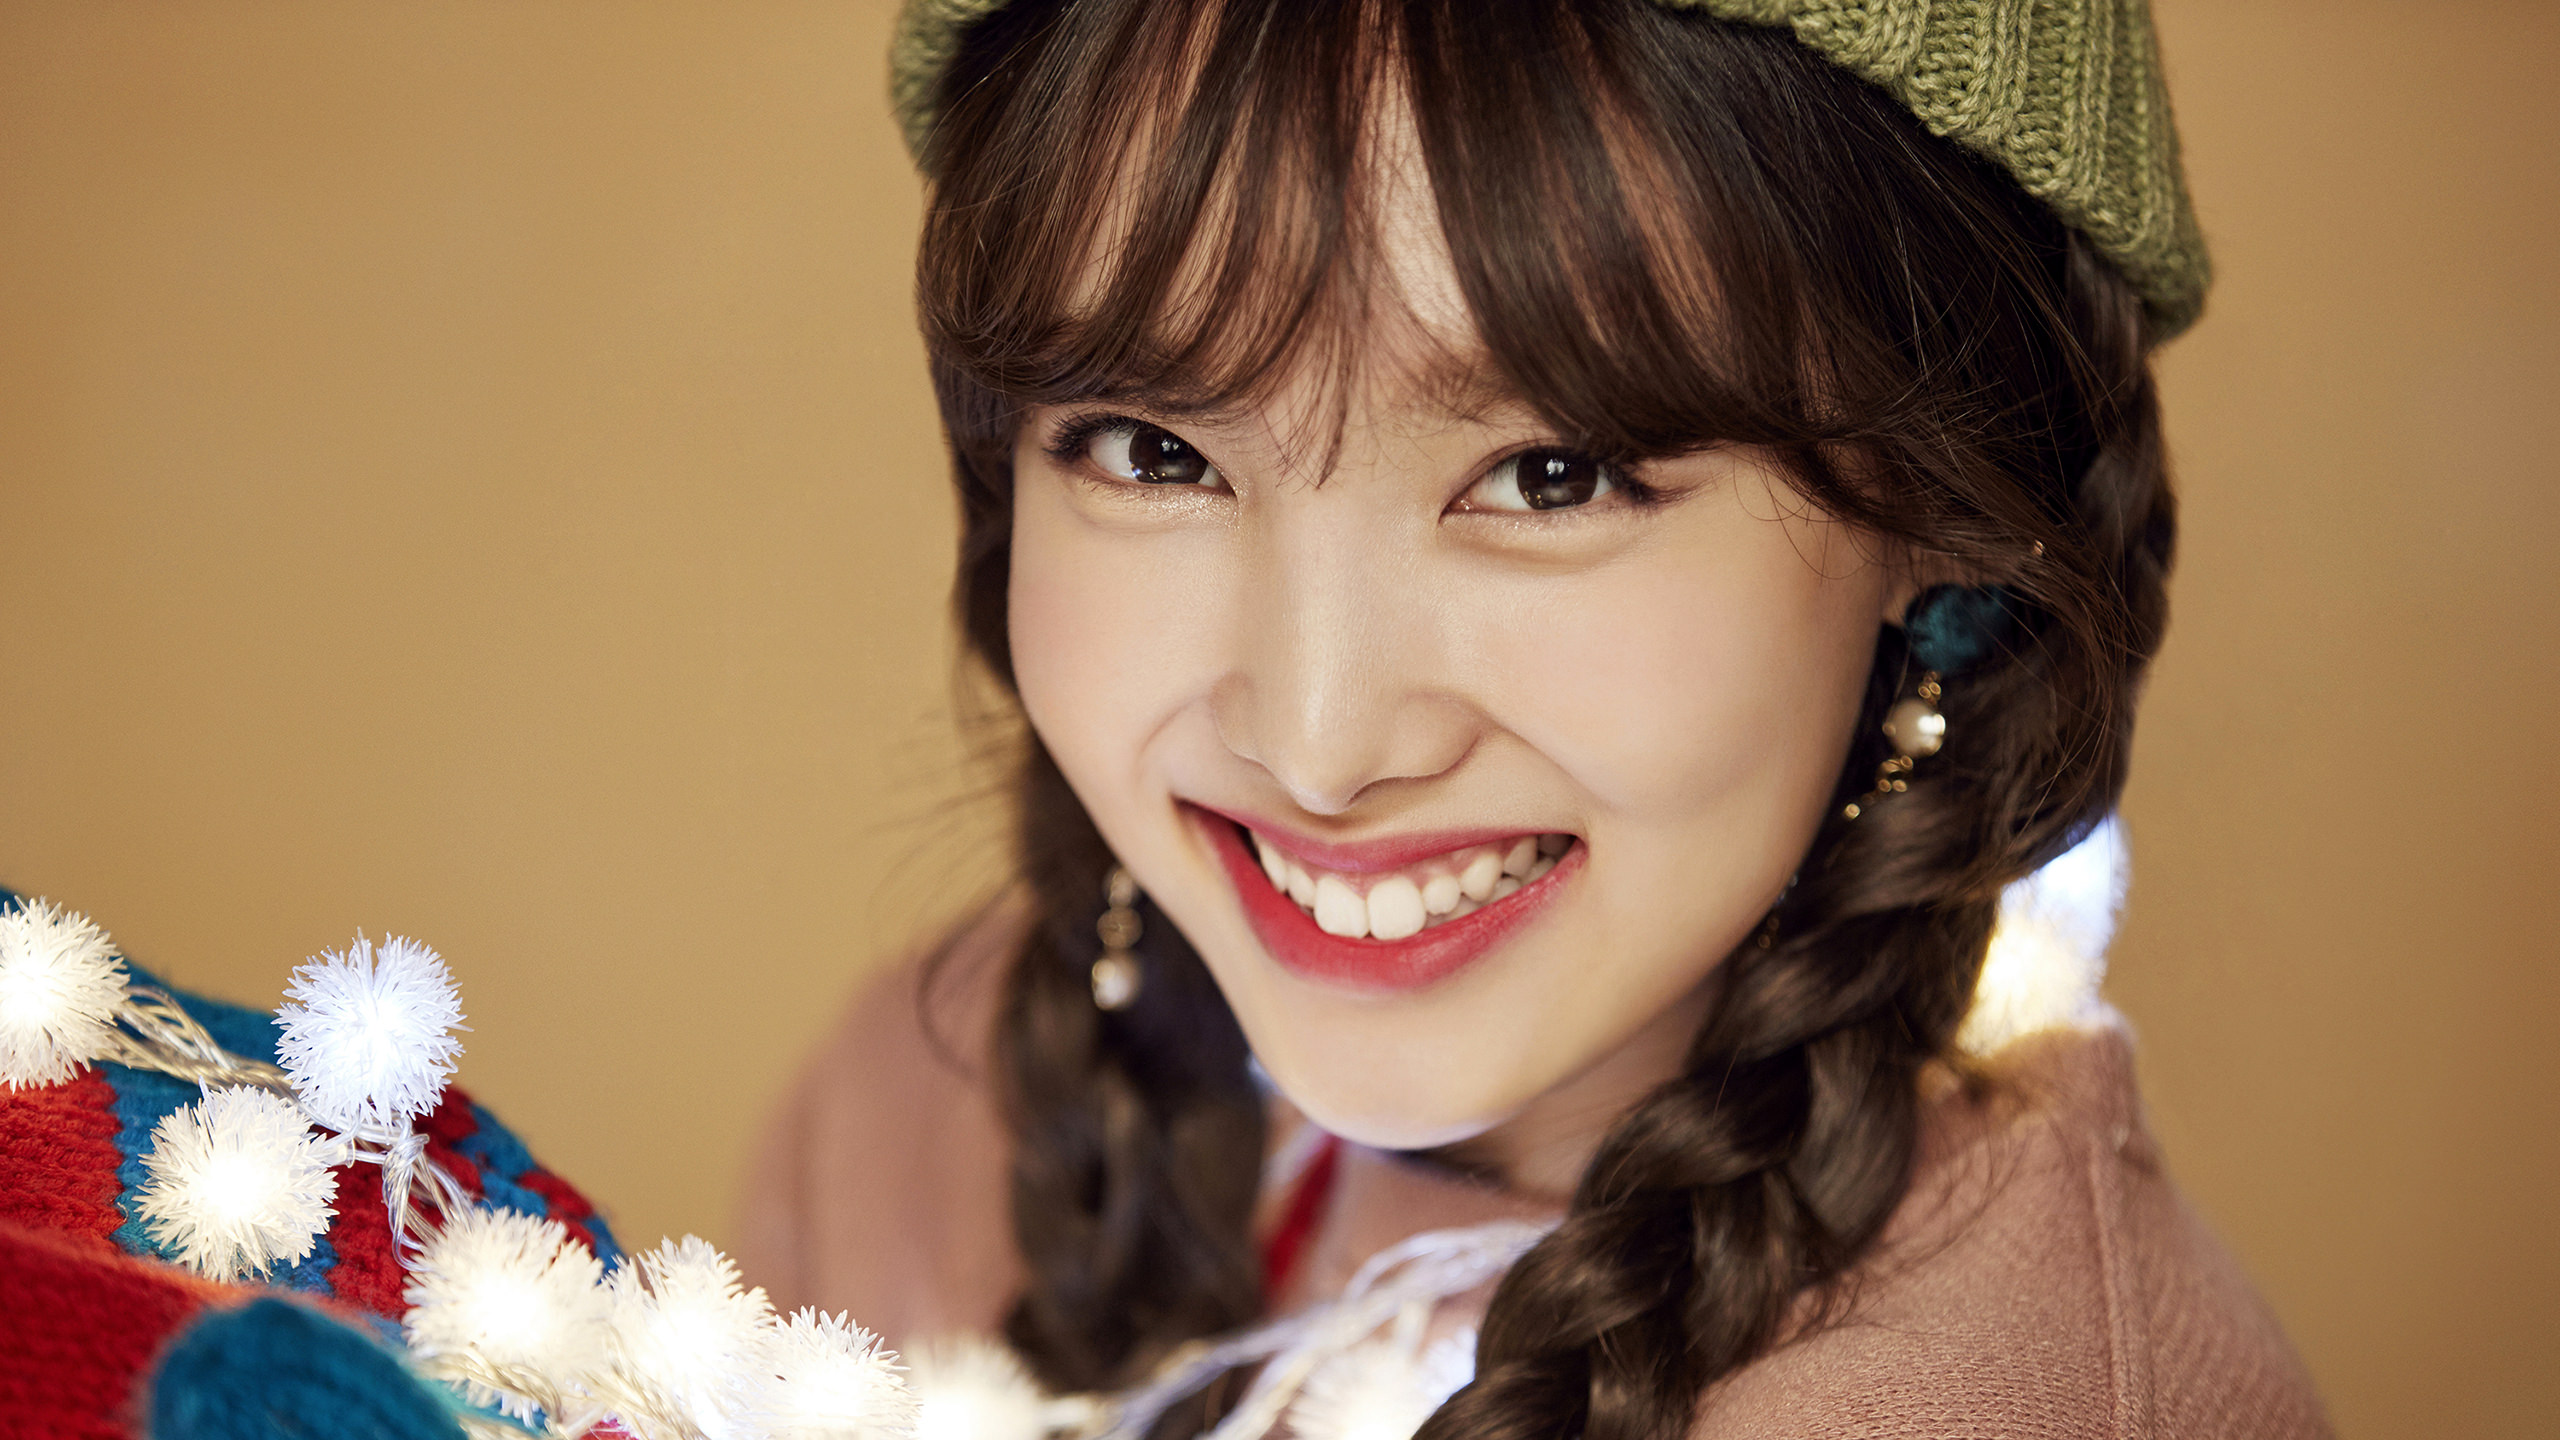 Merry Happy] Individual 1440p Group 4k   Wallpapers   Album on 2560x1440